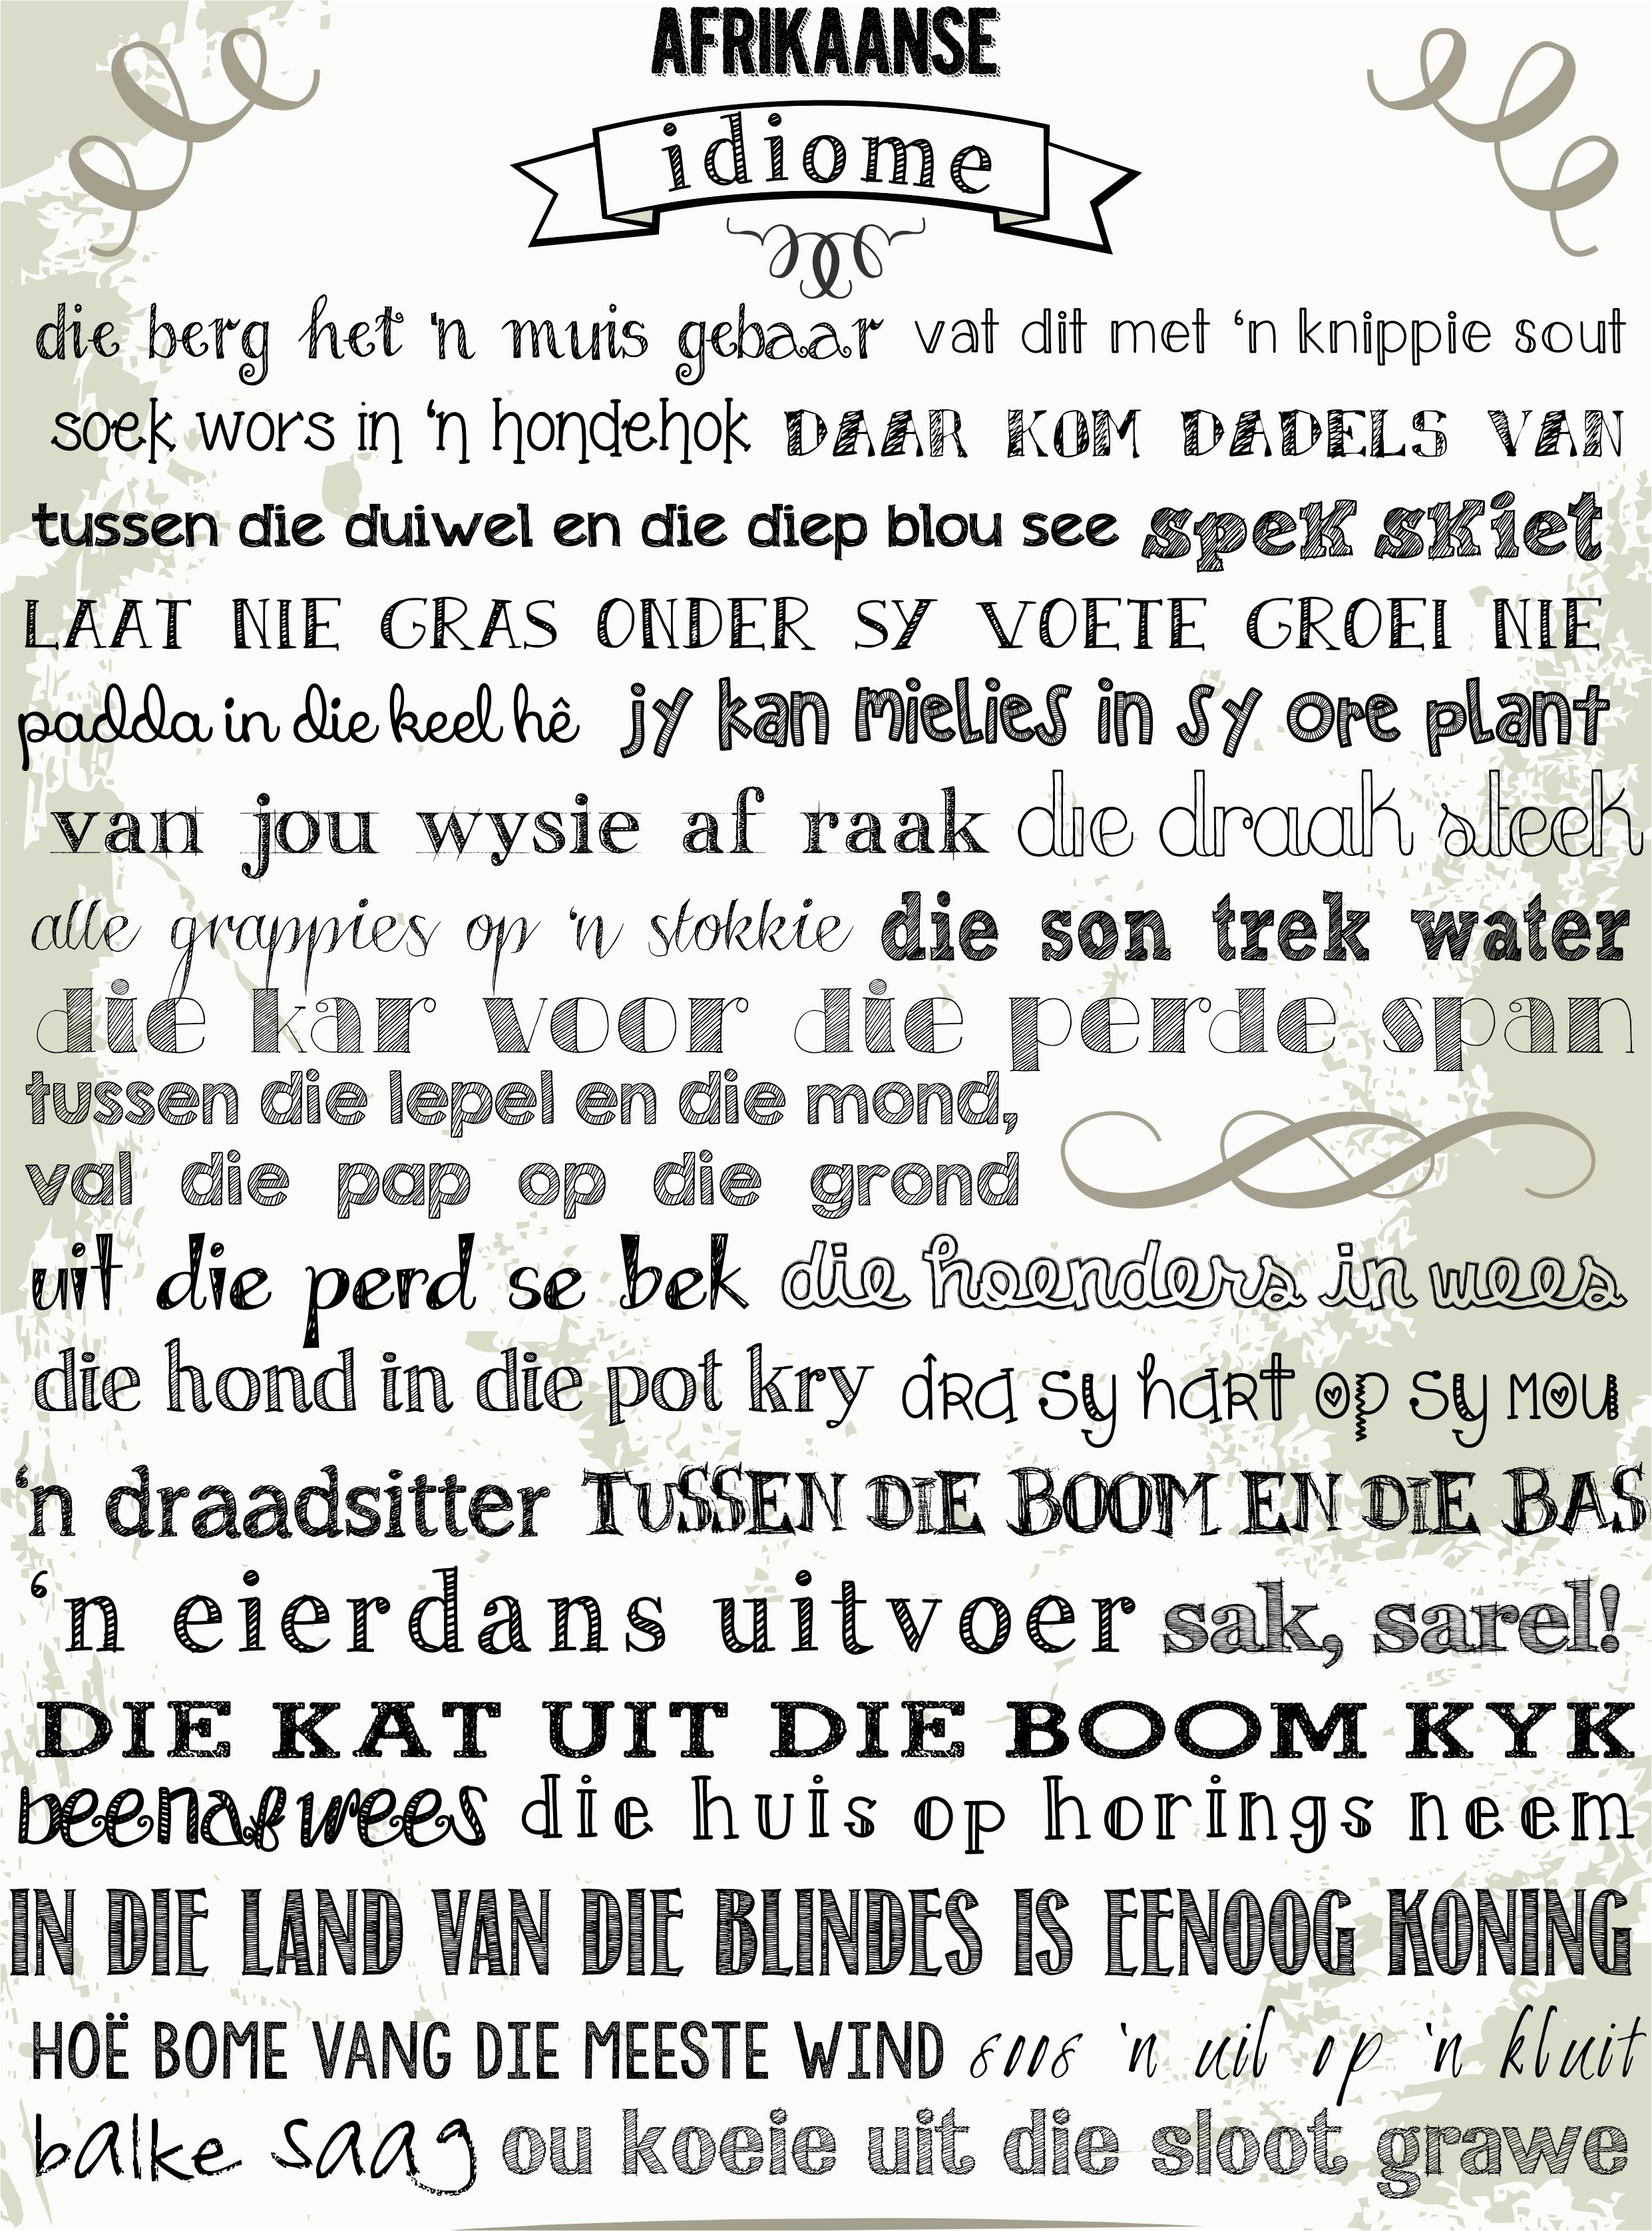 Afrikaans Idiome